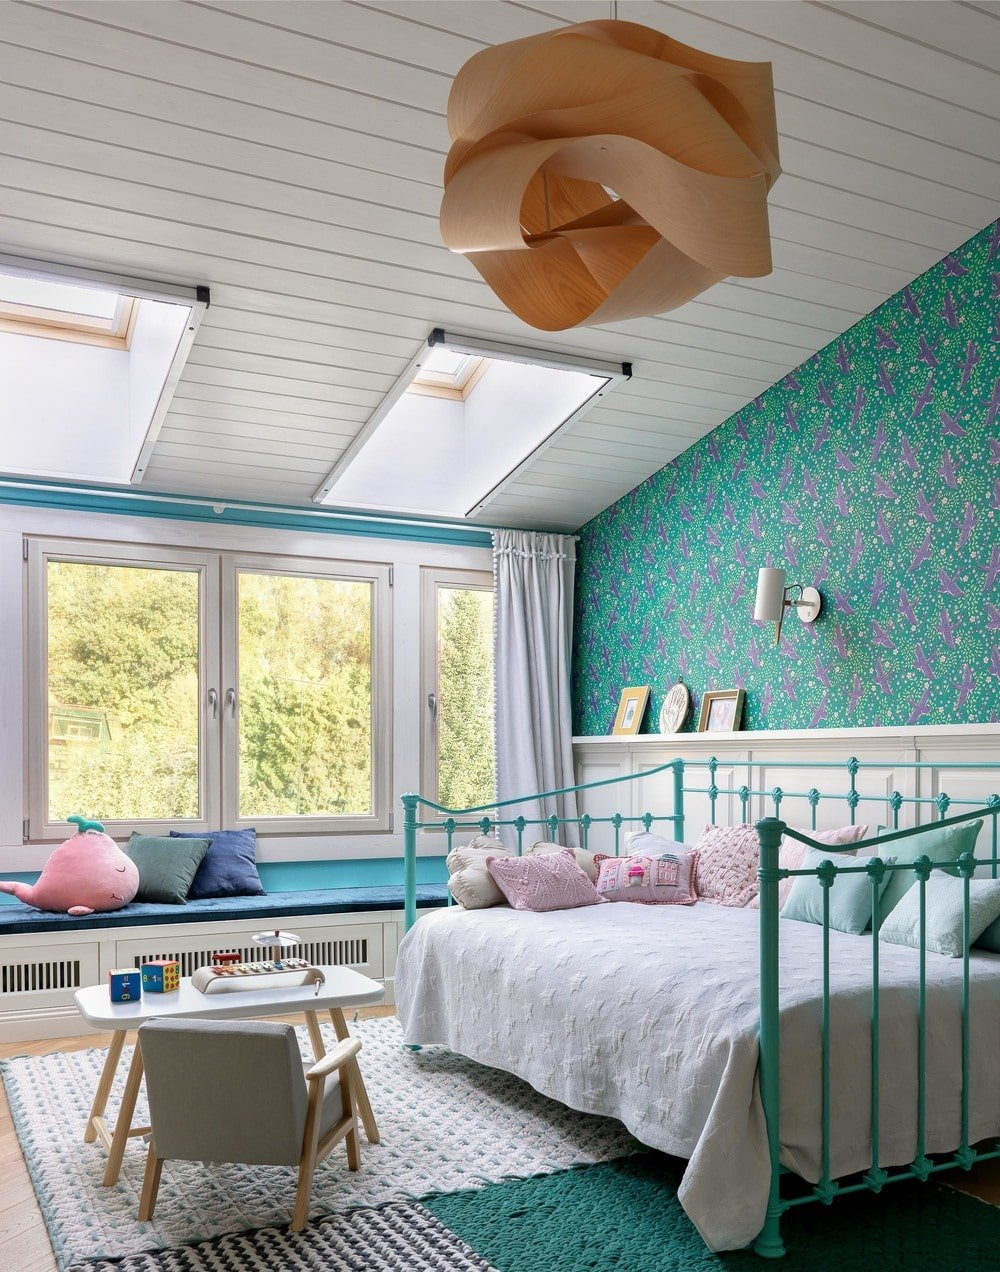 This is a gorgeous kid's bedroom with a lovely green wallpaper that matches the green railings of the bed. The bedroom has enough space for a play area and a reading nook by the window.